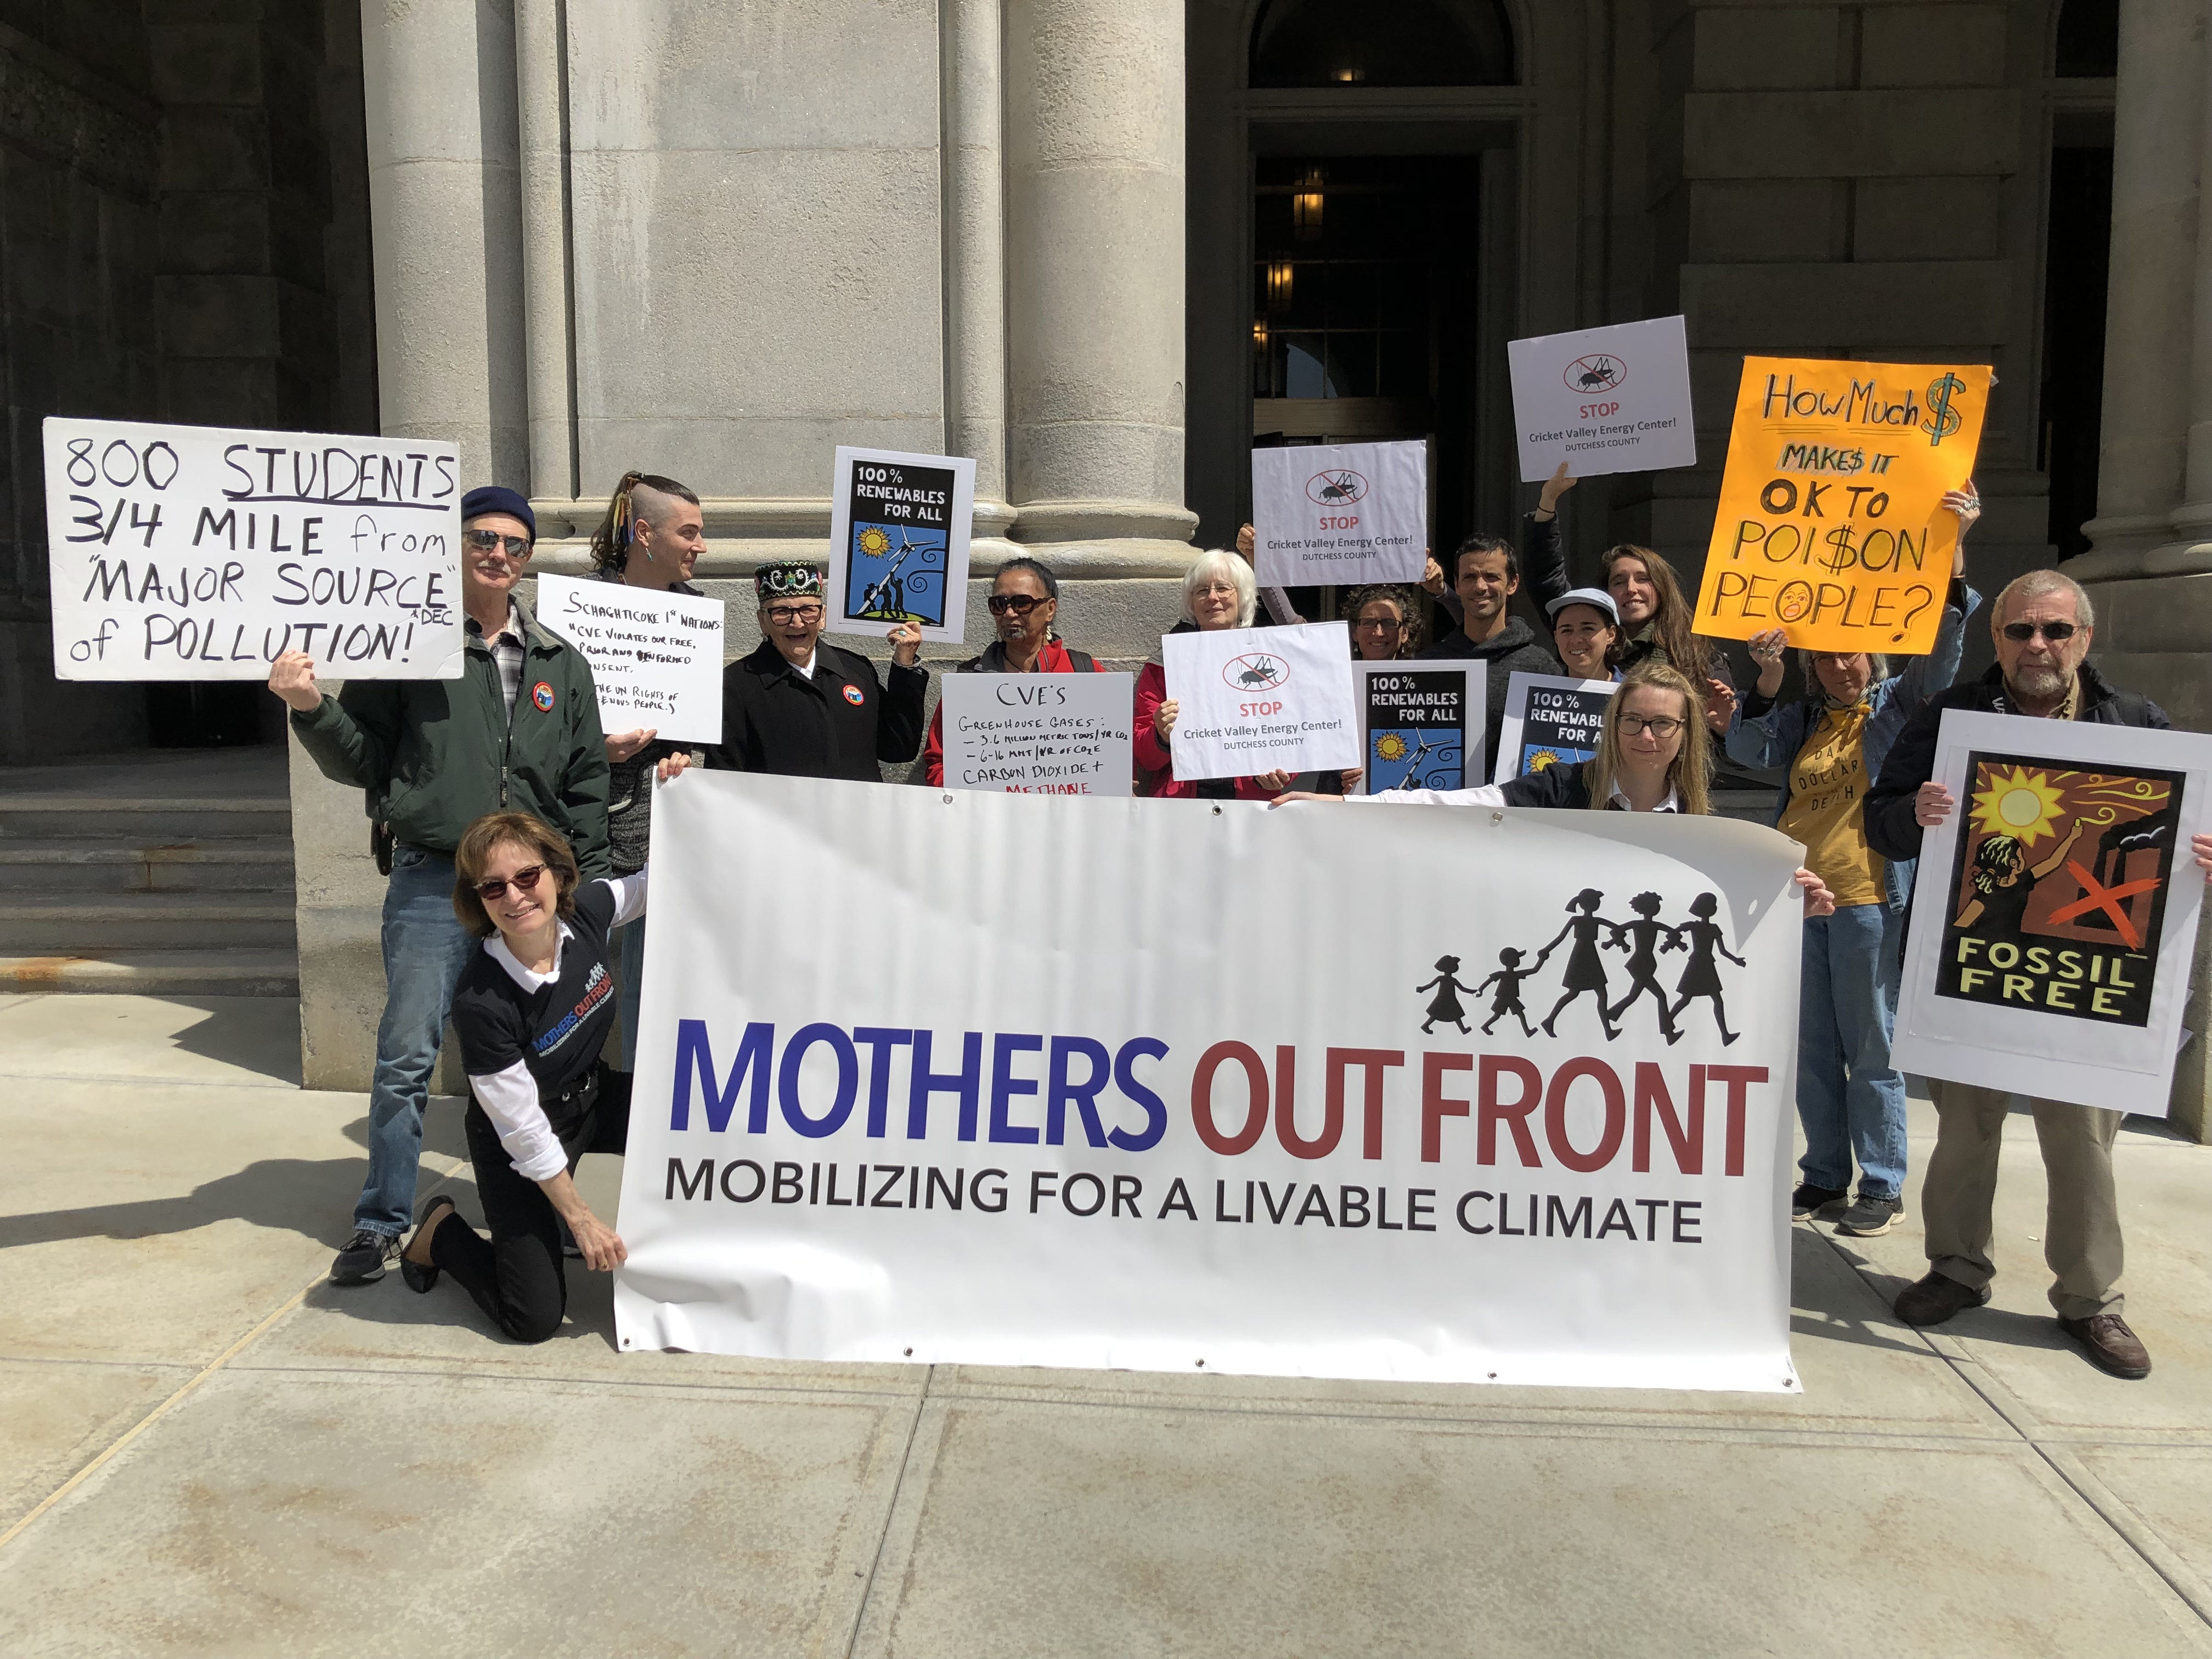 NY_CricketValley_Megan_Root_20190429_AlbanyProtest_2.jpg